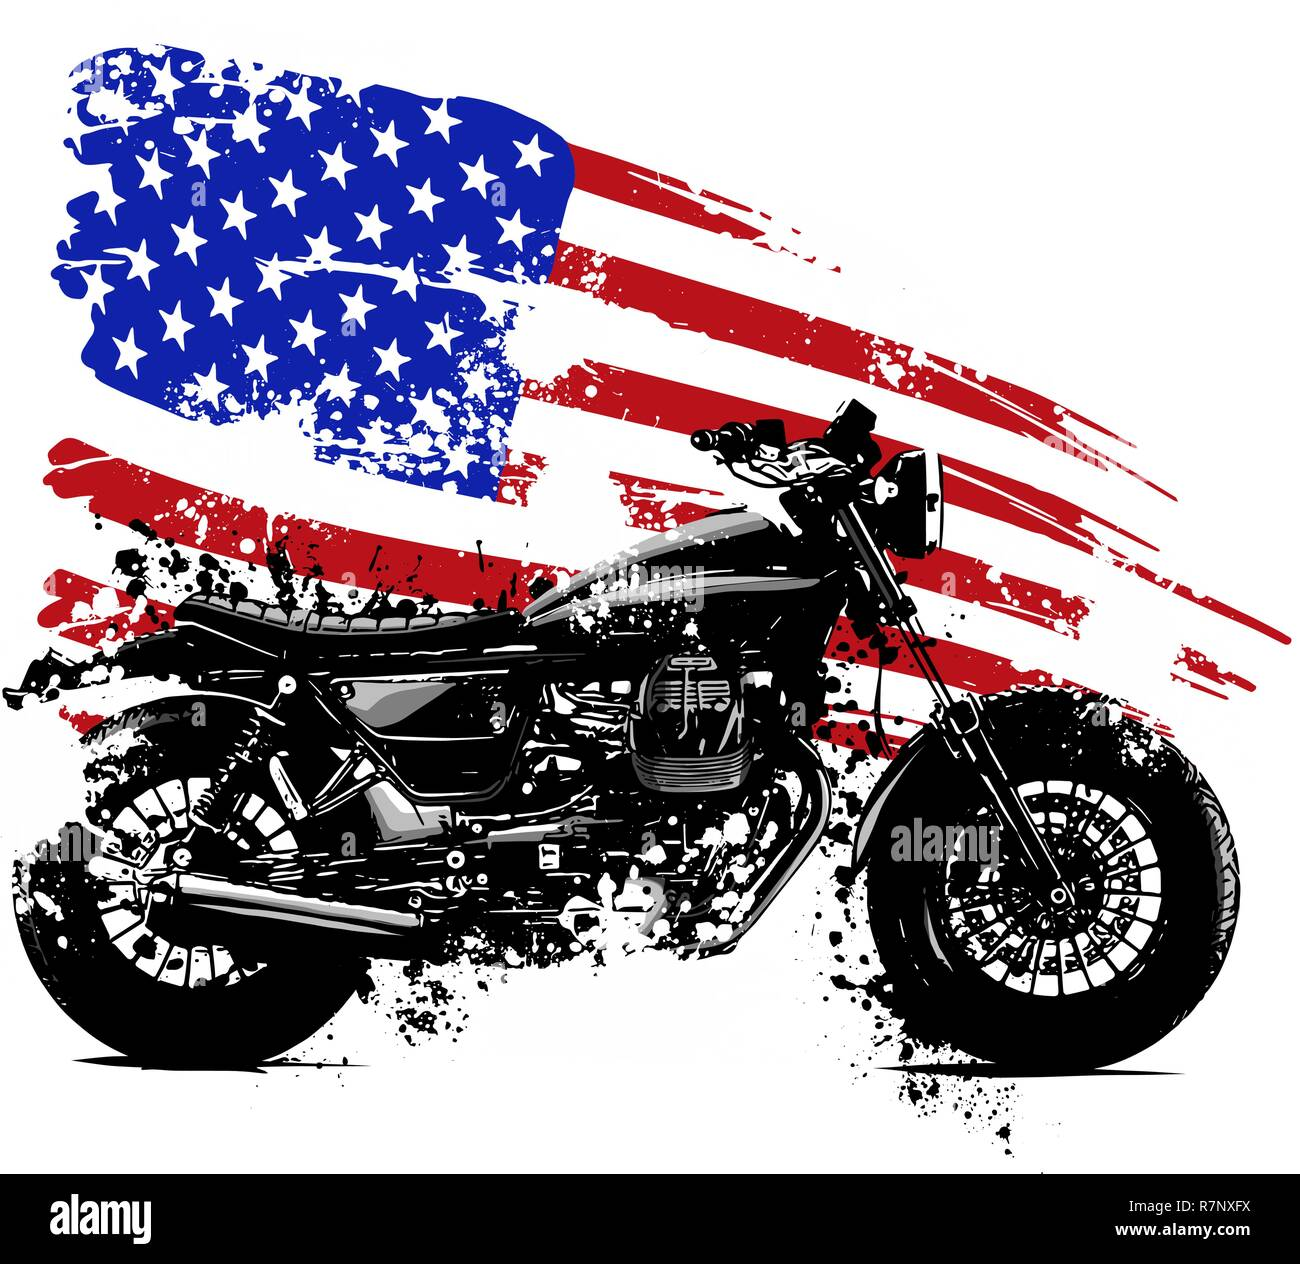 vetor illustration American chopper motorcycle with american flag - Stock Image